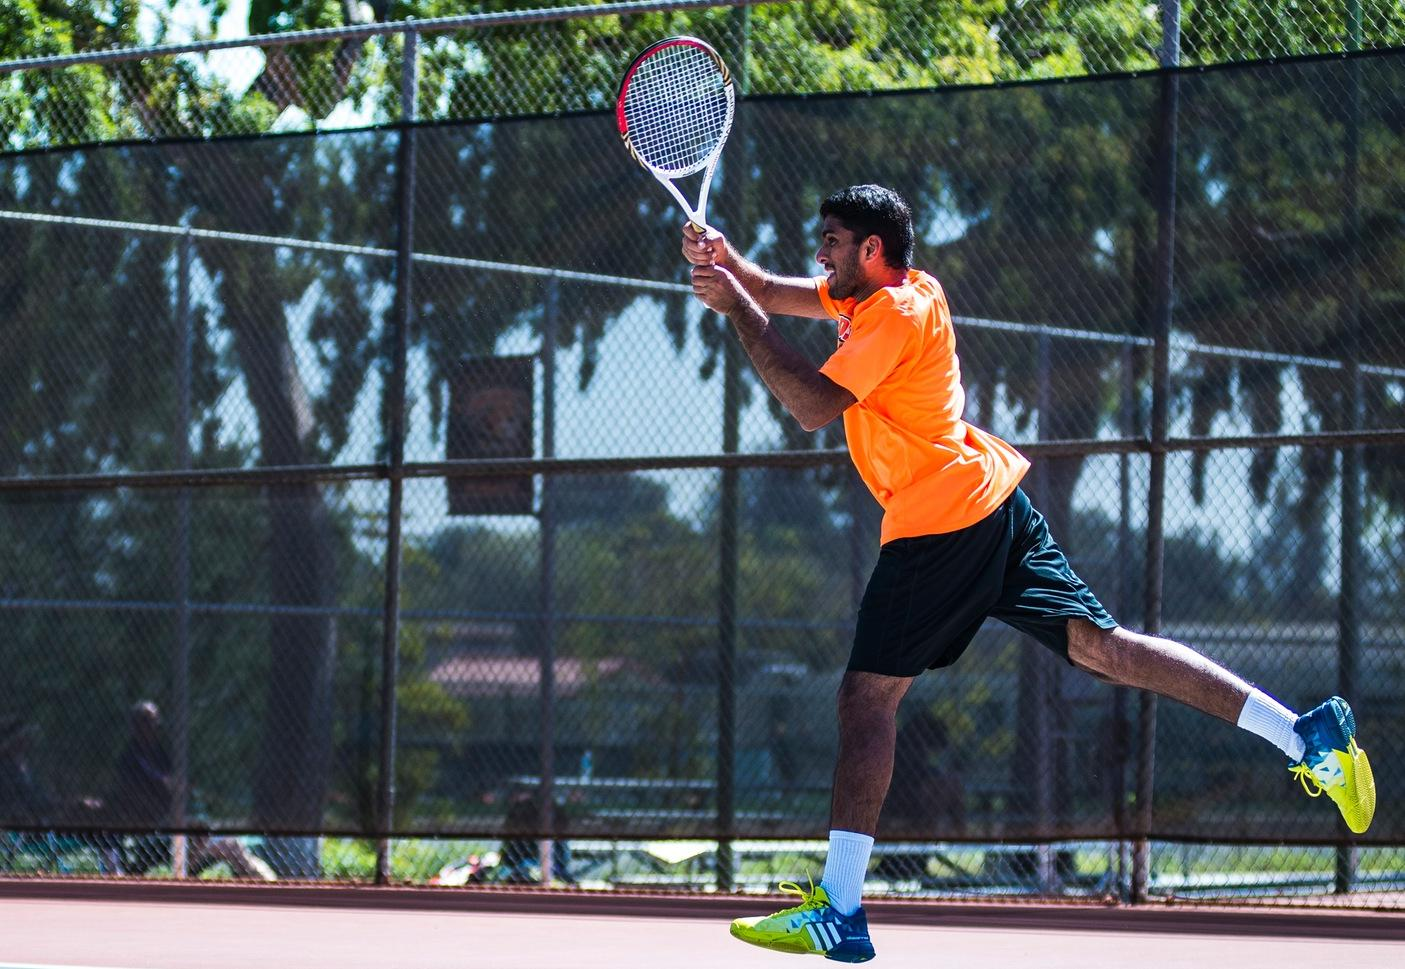 Pathireddy Brothers Upend Sagehens in Doubles